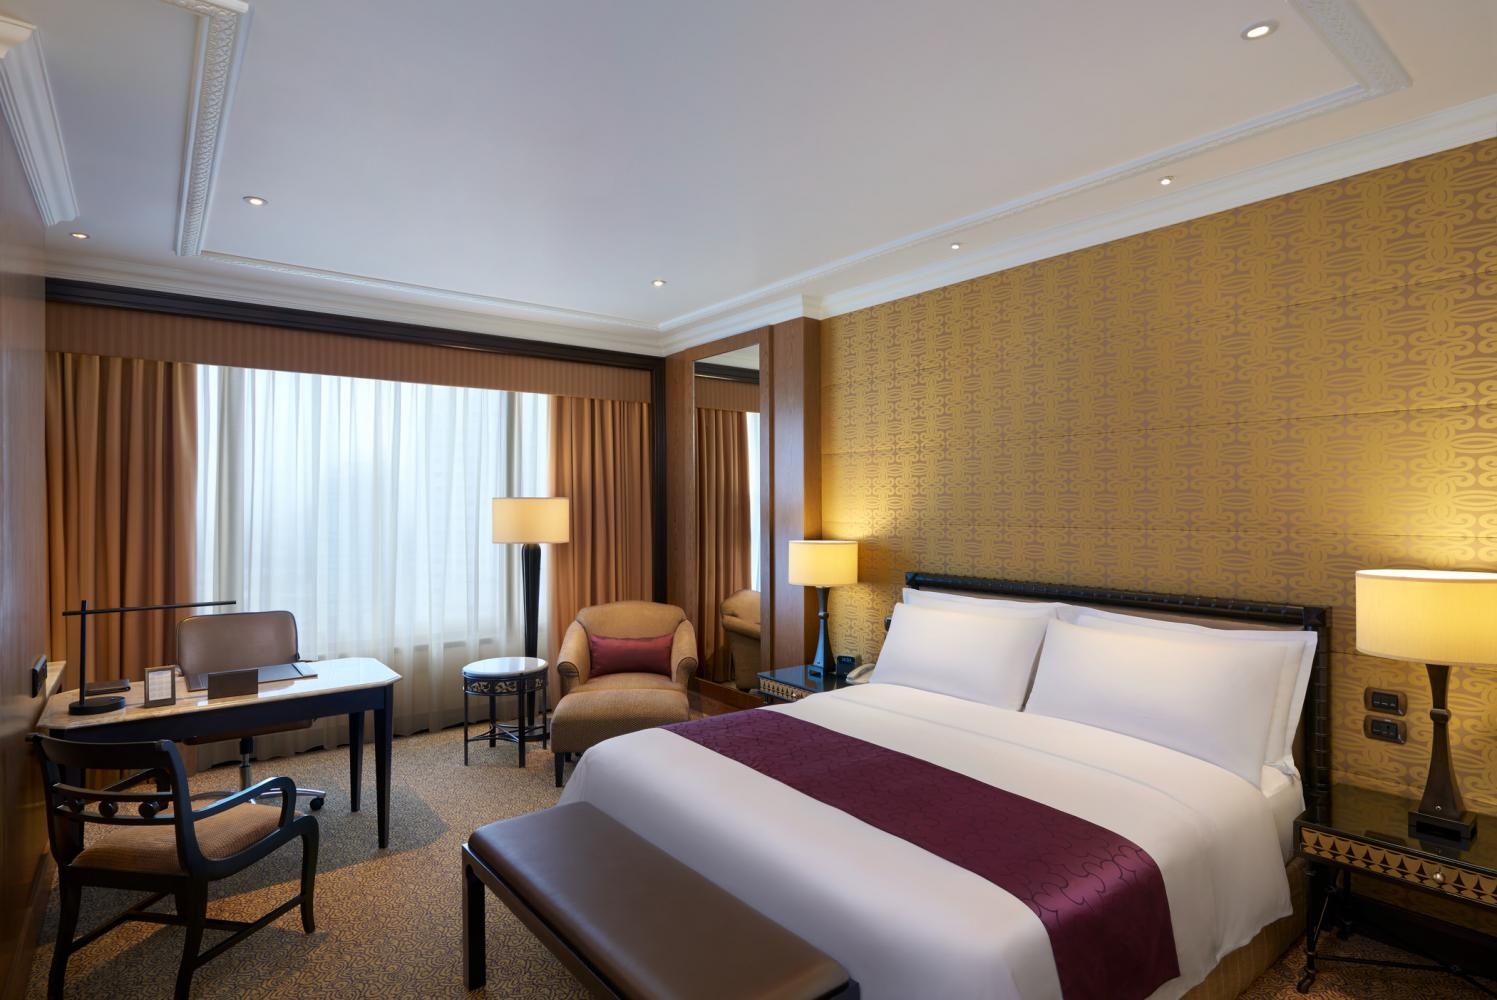 The high-end segment of the hotel market in Bangkok is dominated by four-star properties. The occupancy rate in this segment was already dropping in the second half of 2019.